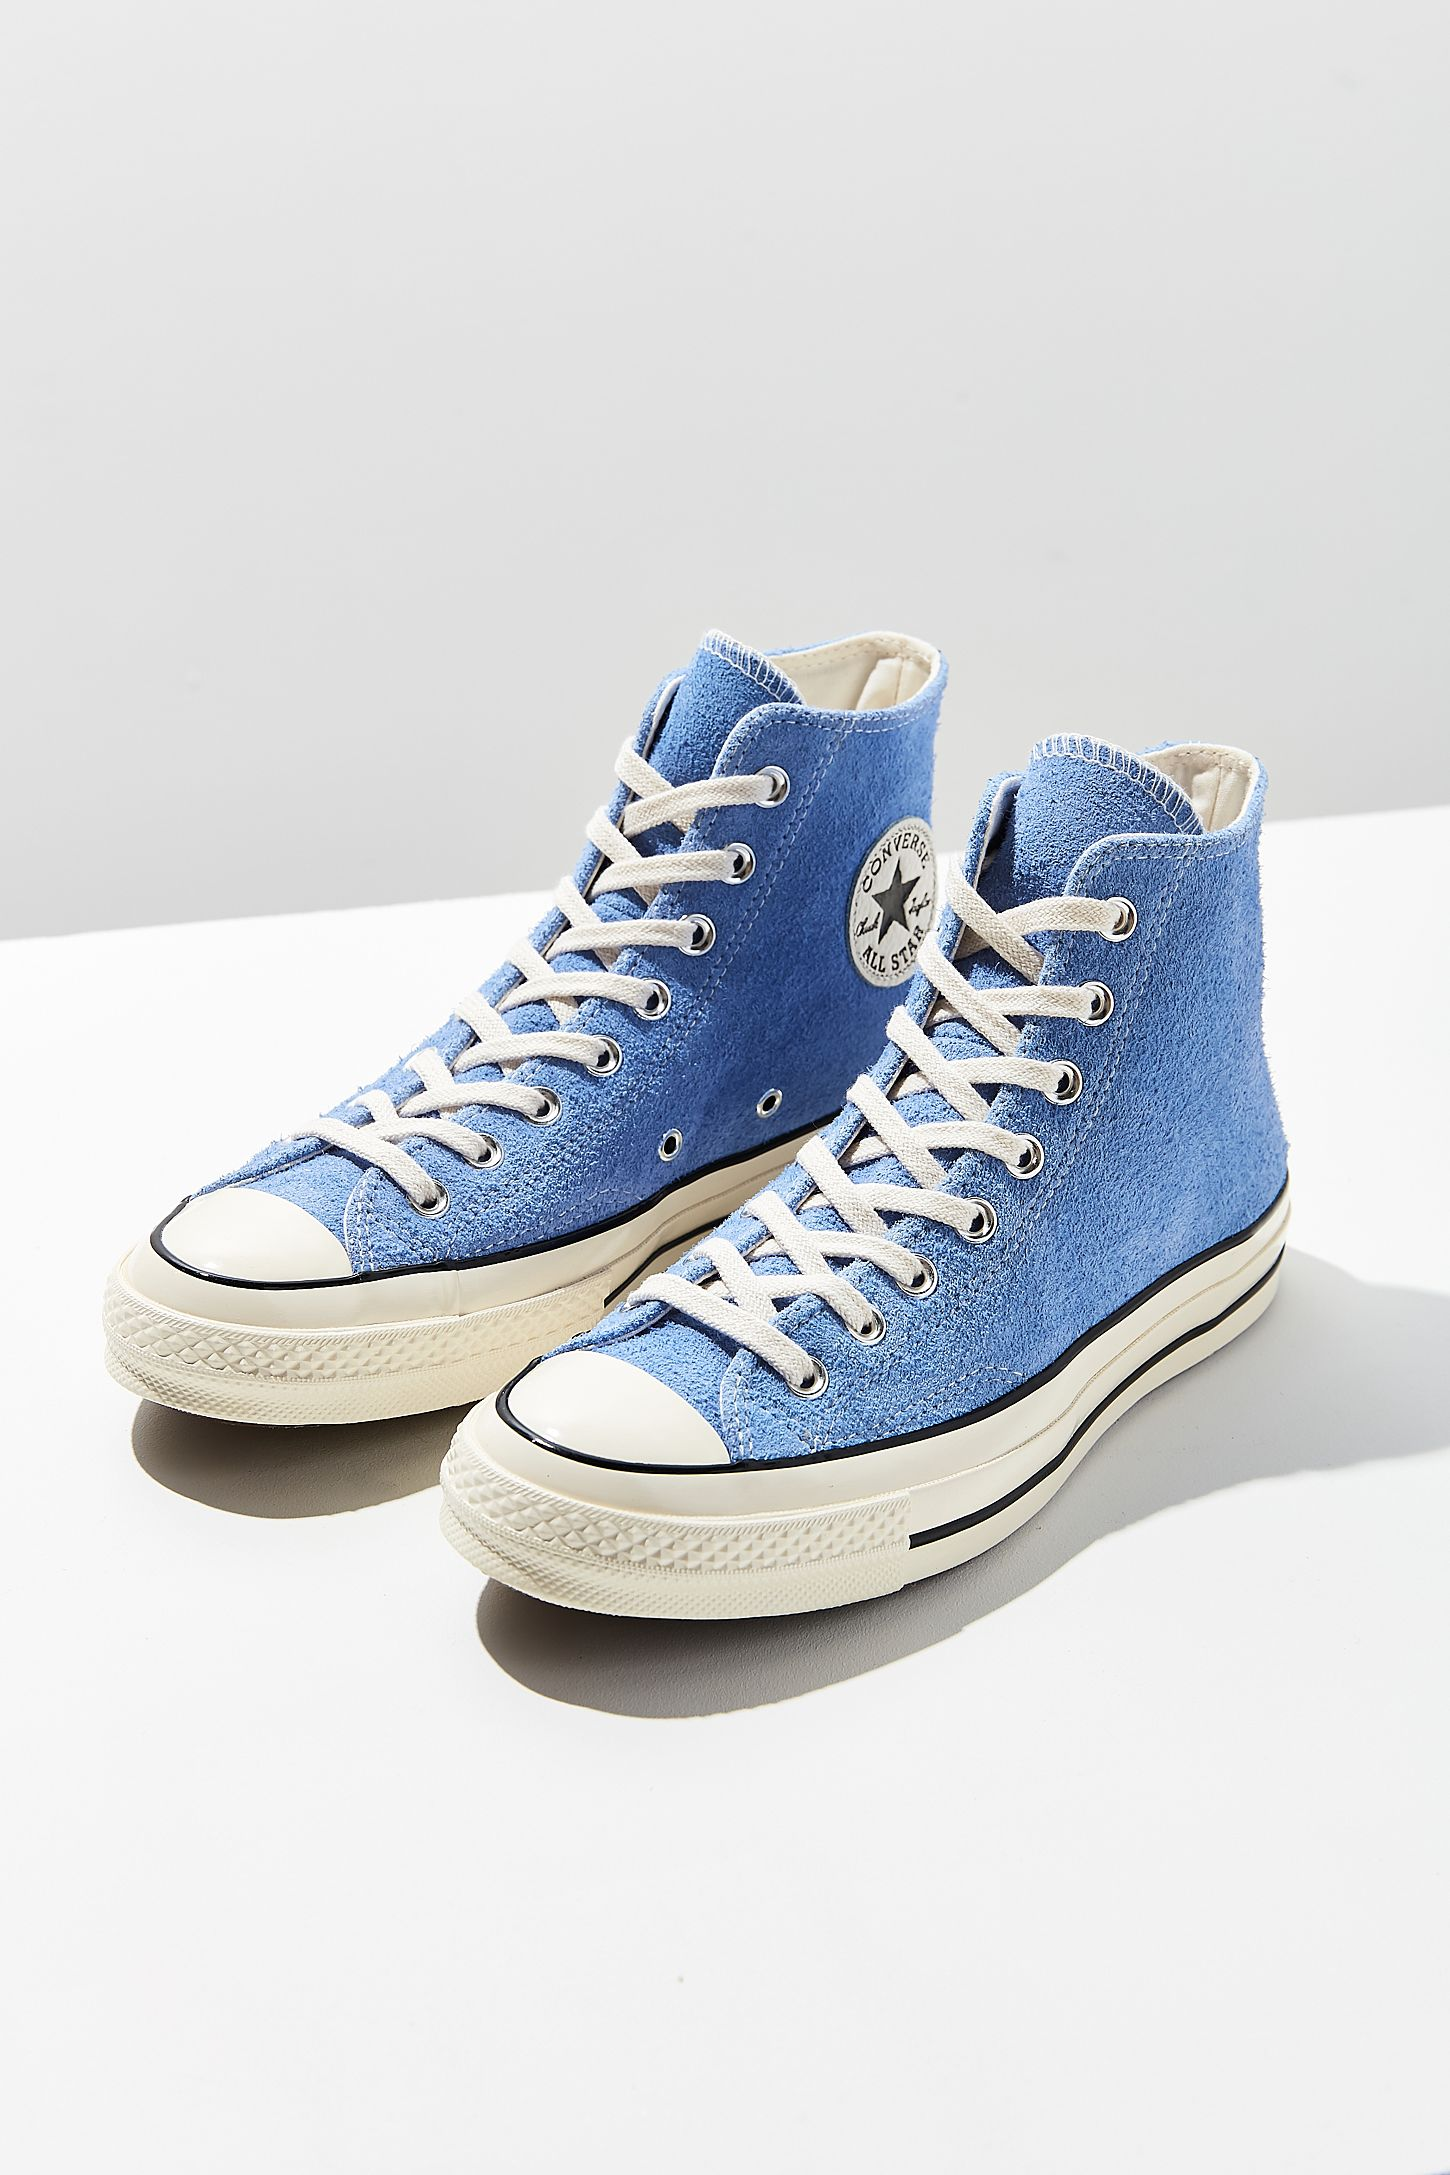 60ef5f98134366 Converse Chuck Taylor All Star  70 Vintage Suede High Top Sneaker. Tap  image to zoom. Hover to zoom. Double Tap to Zoom